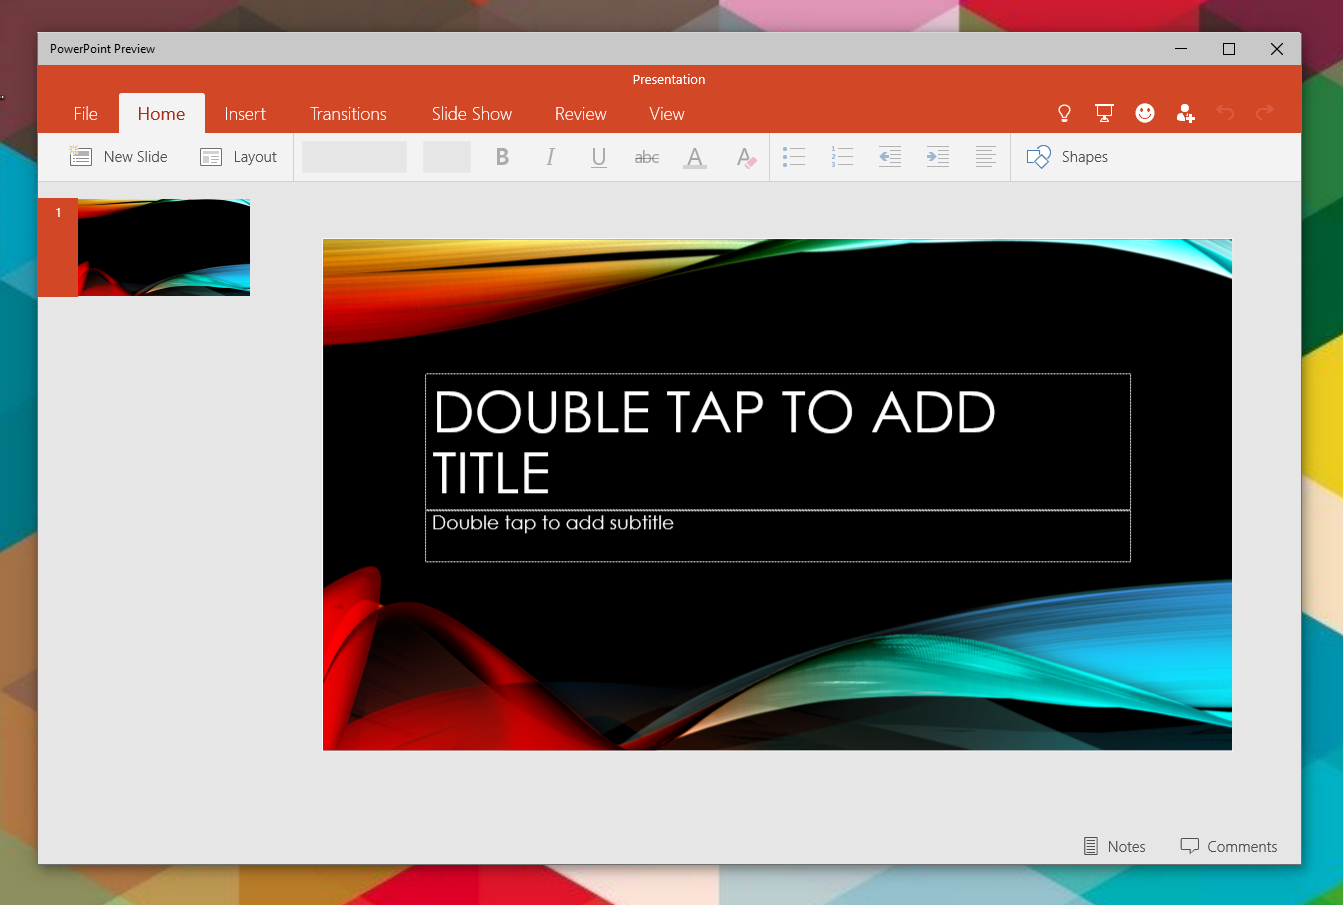 powerpoint_office_touch